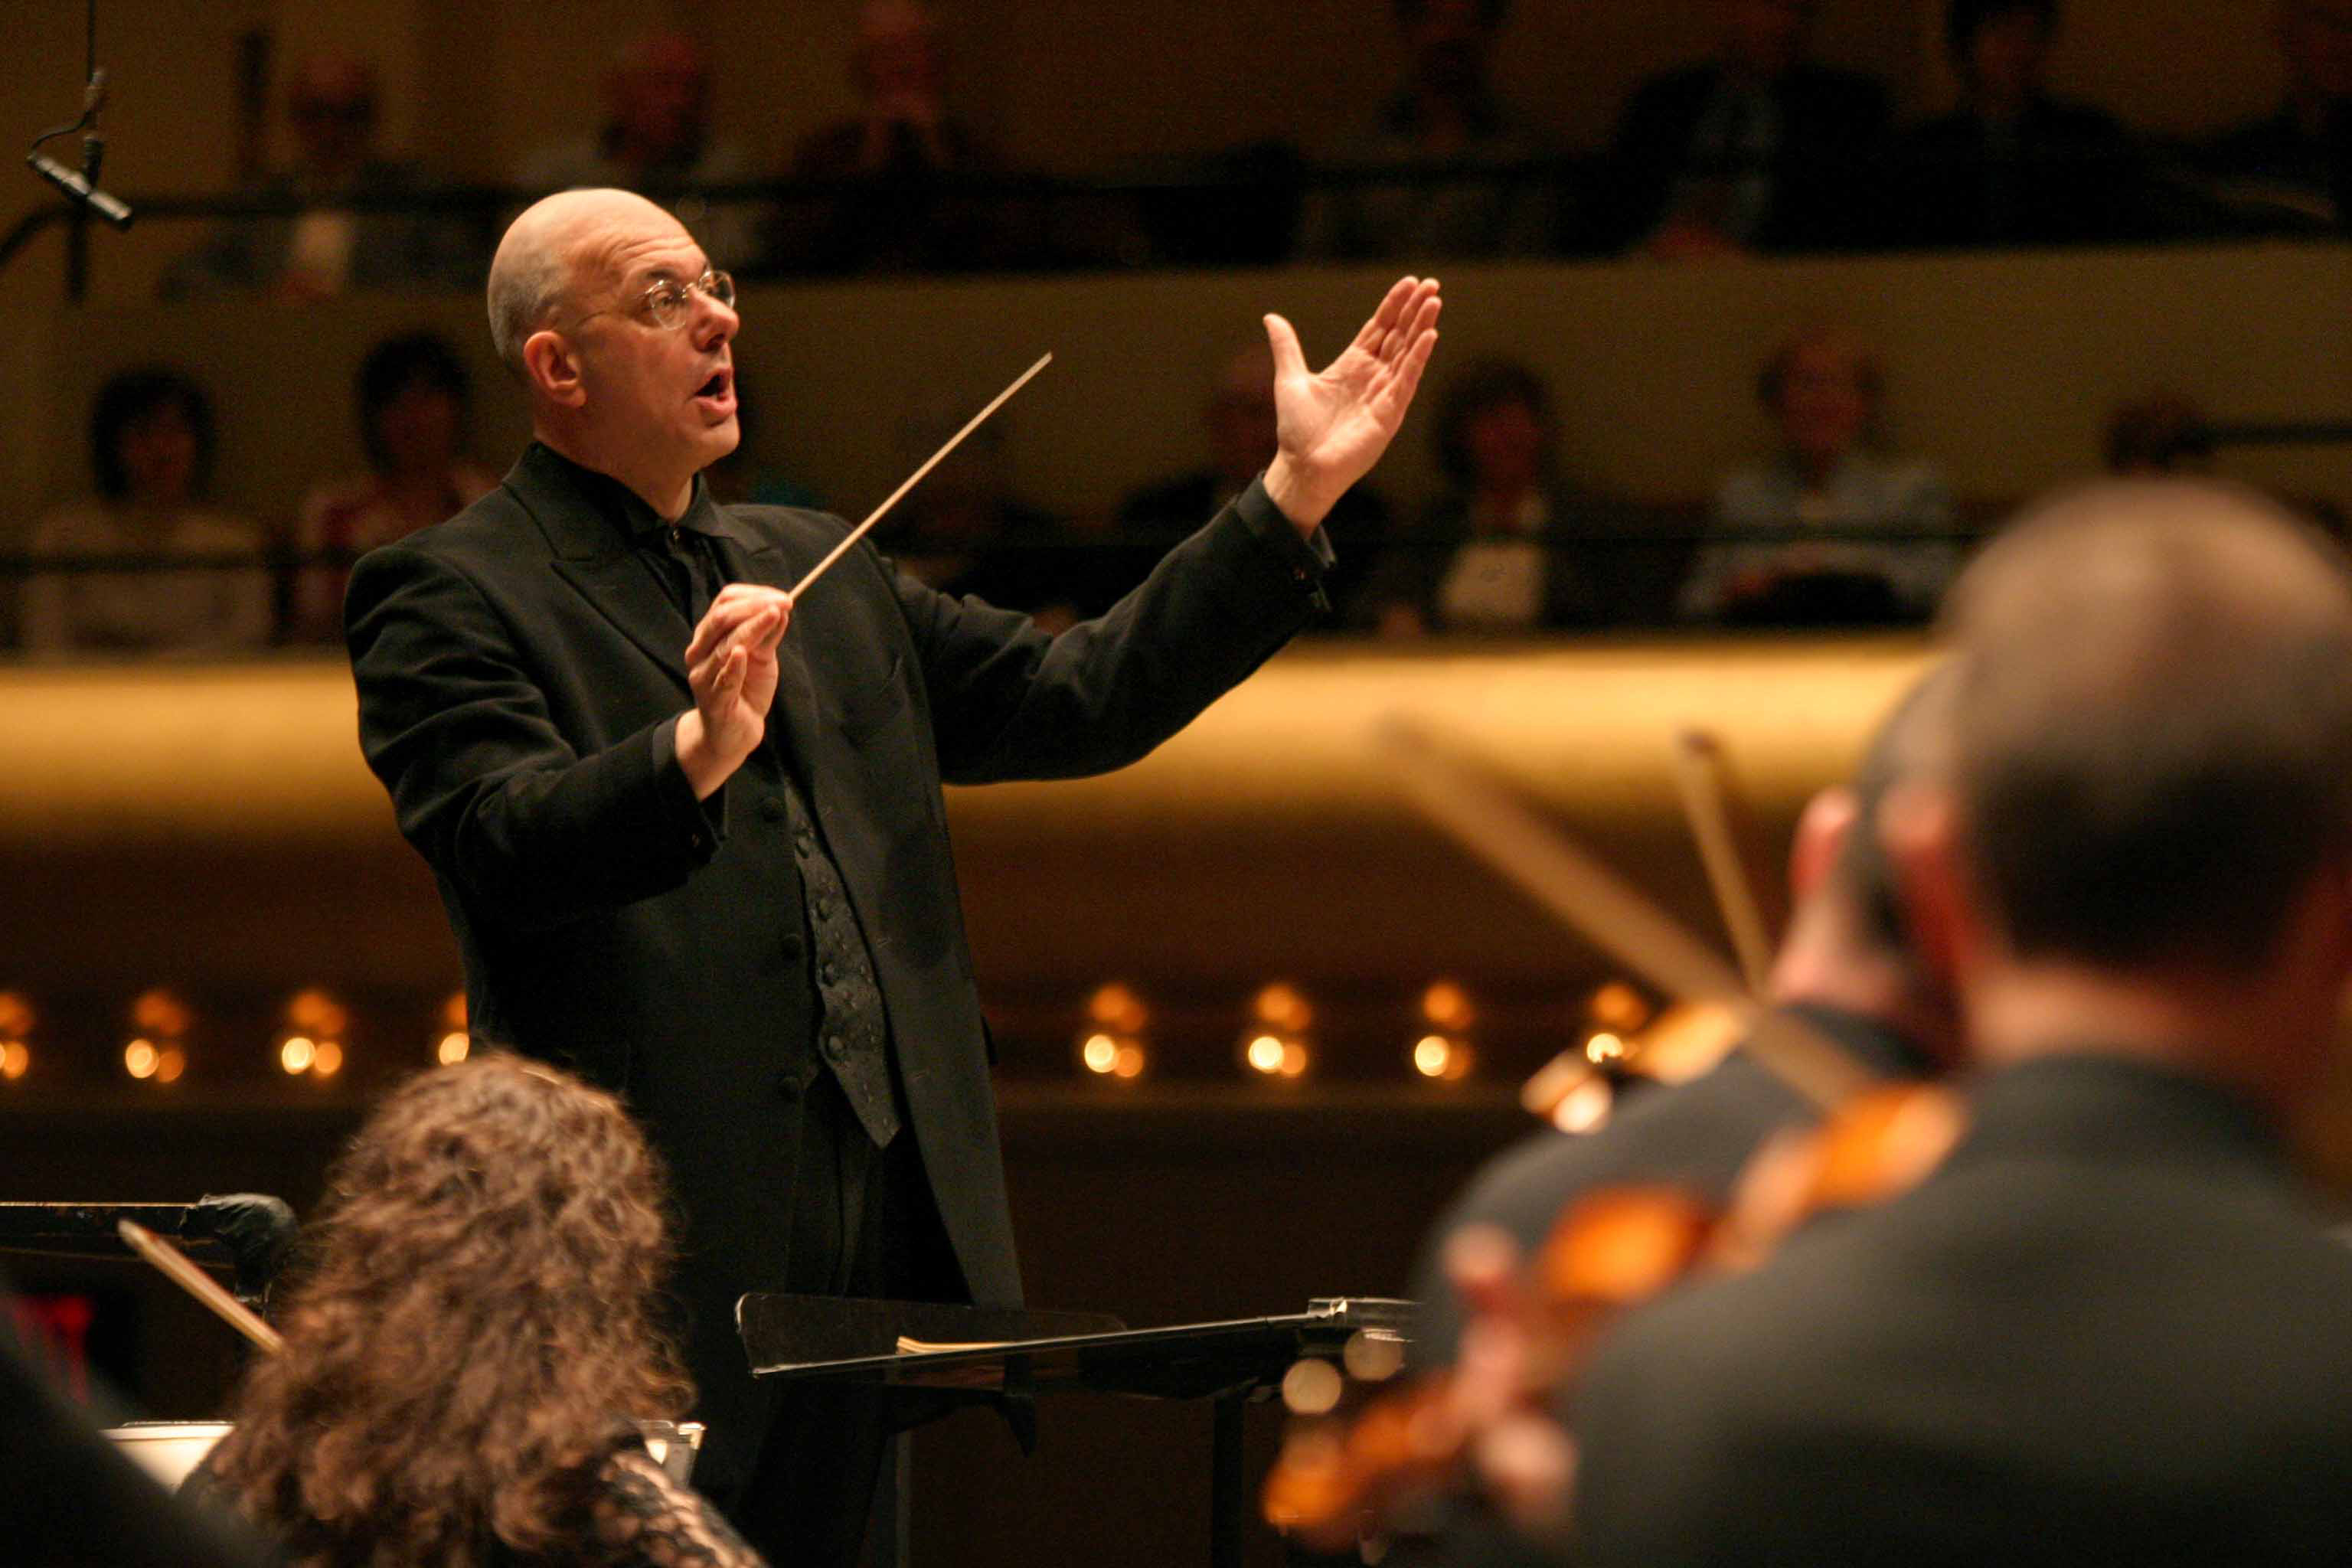 Leon Botstein conducting the American Symphony Orchestra